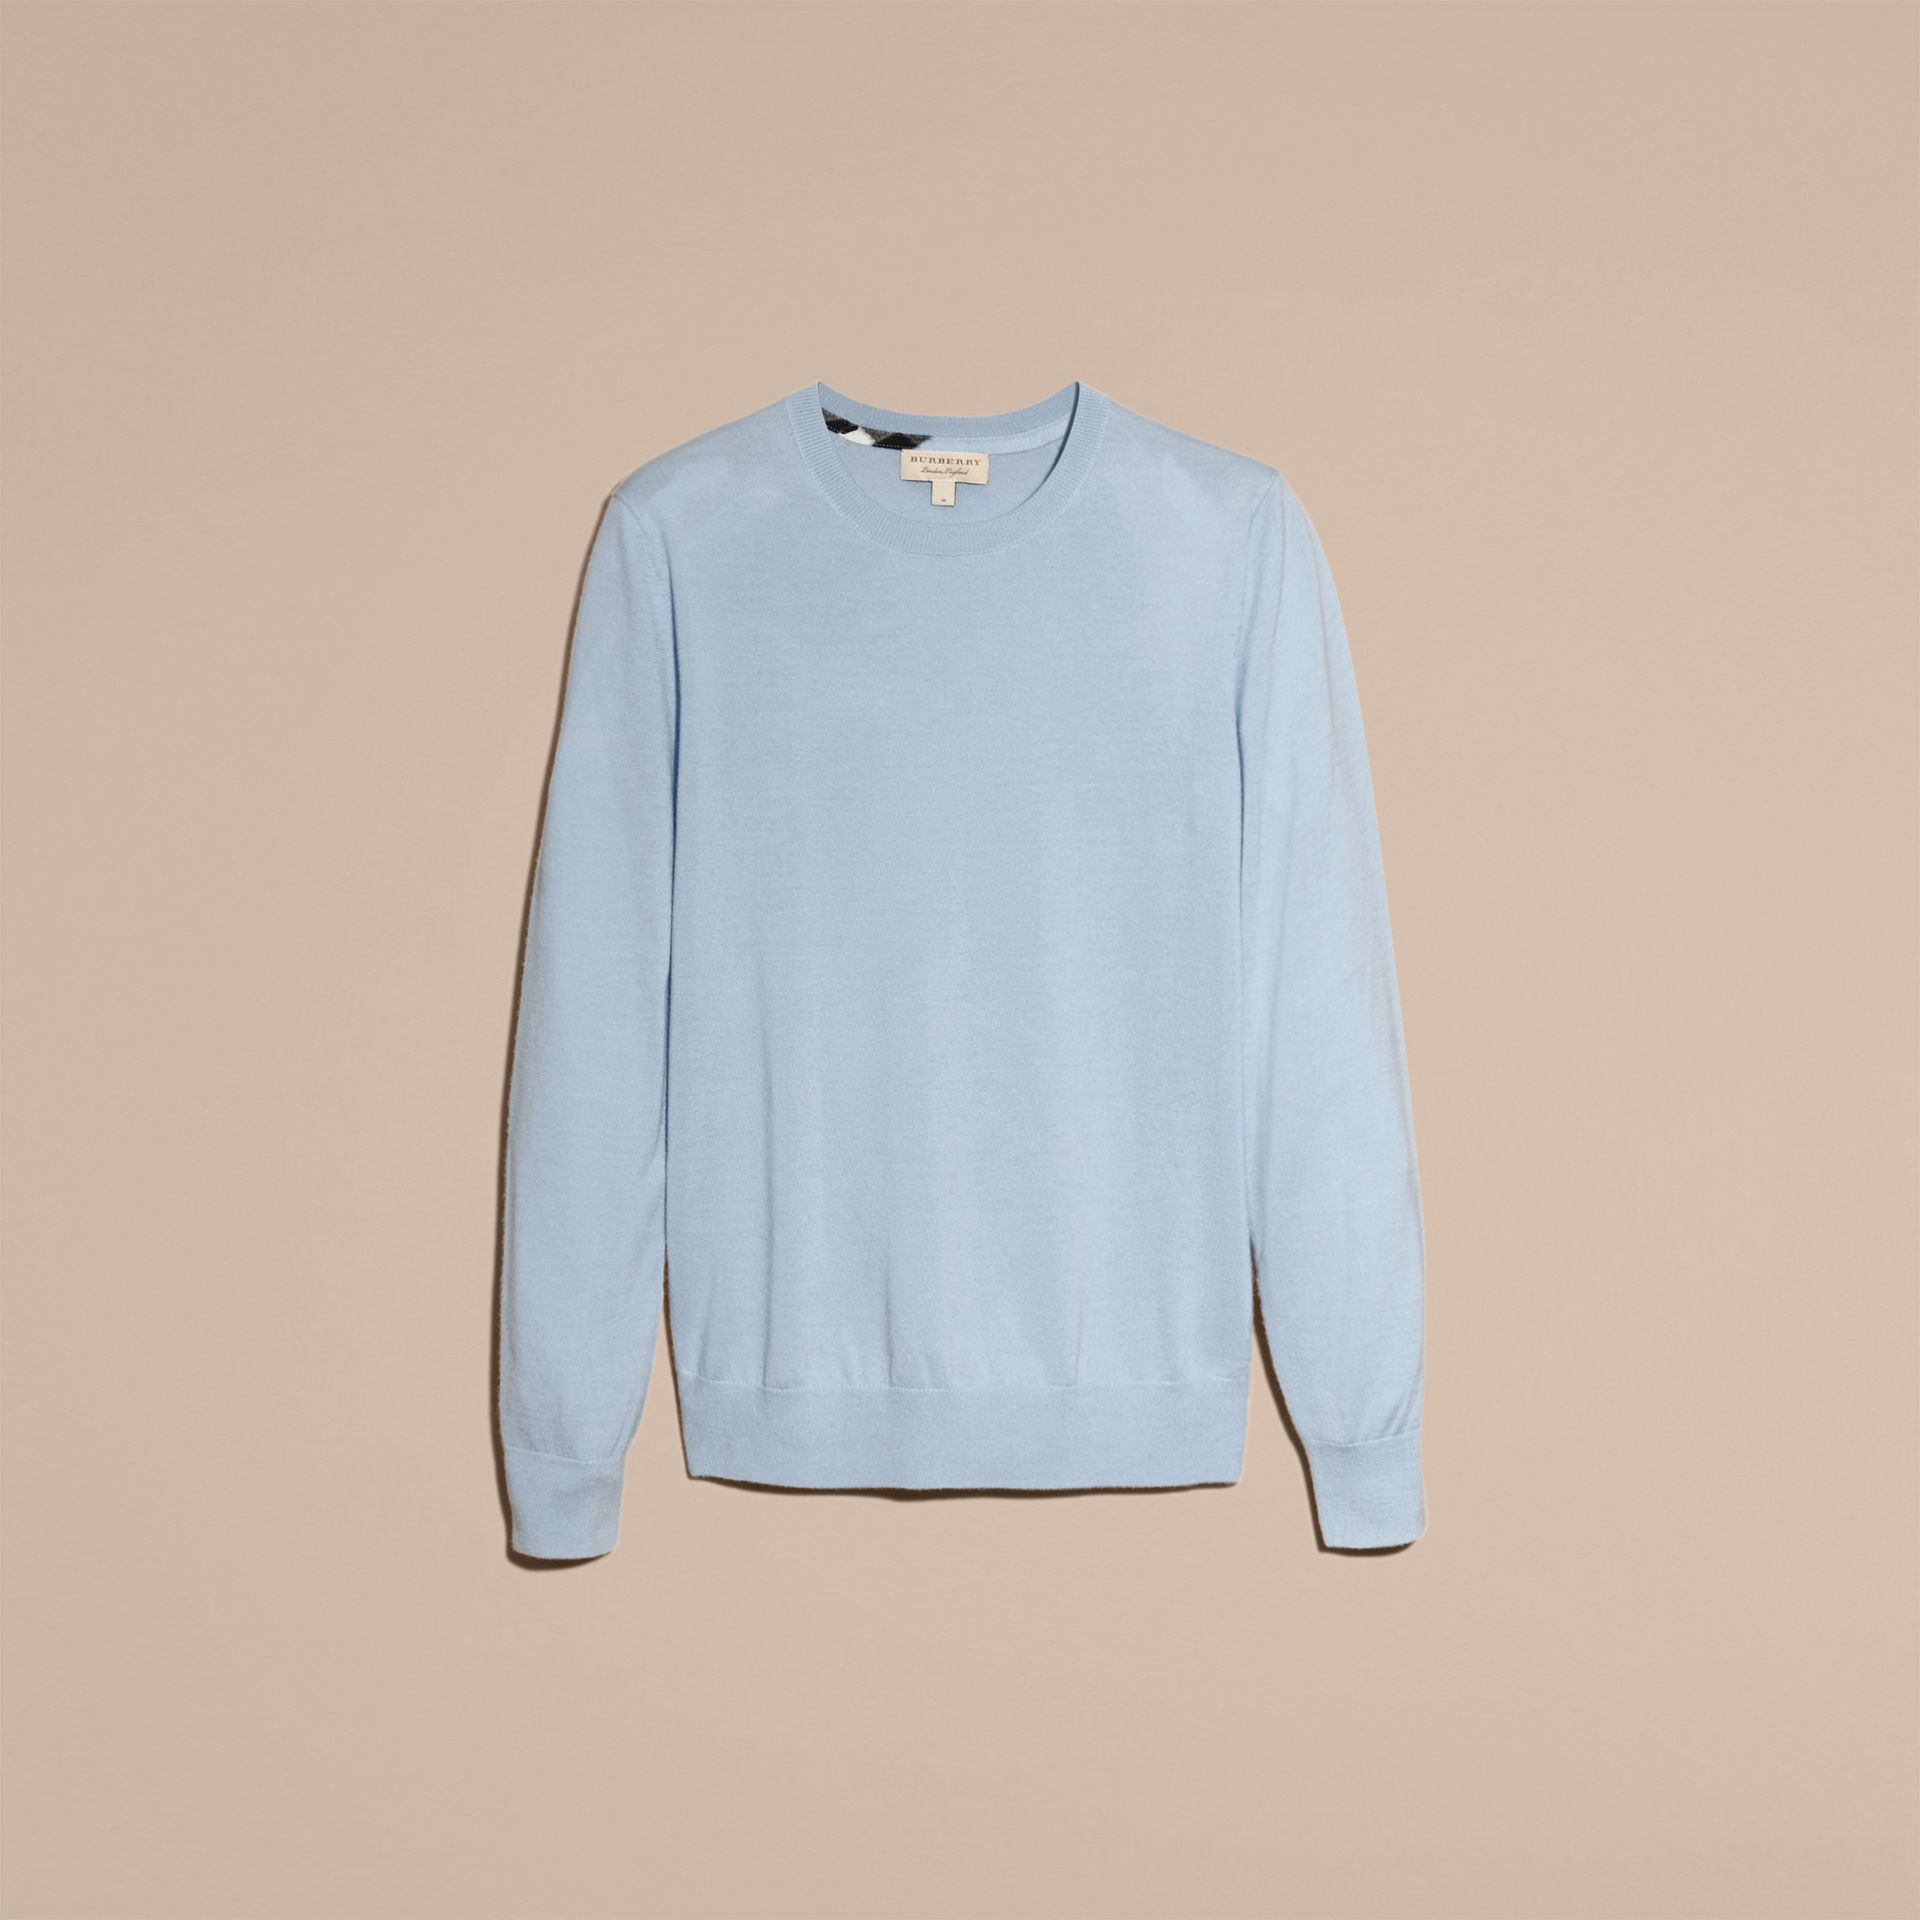 Check Jacquard Detail Cashmere Sweater in Light Blue - Men | Burberry - gallery image 4